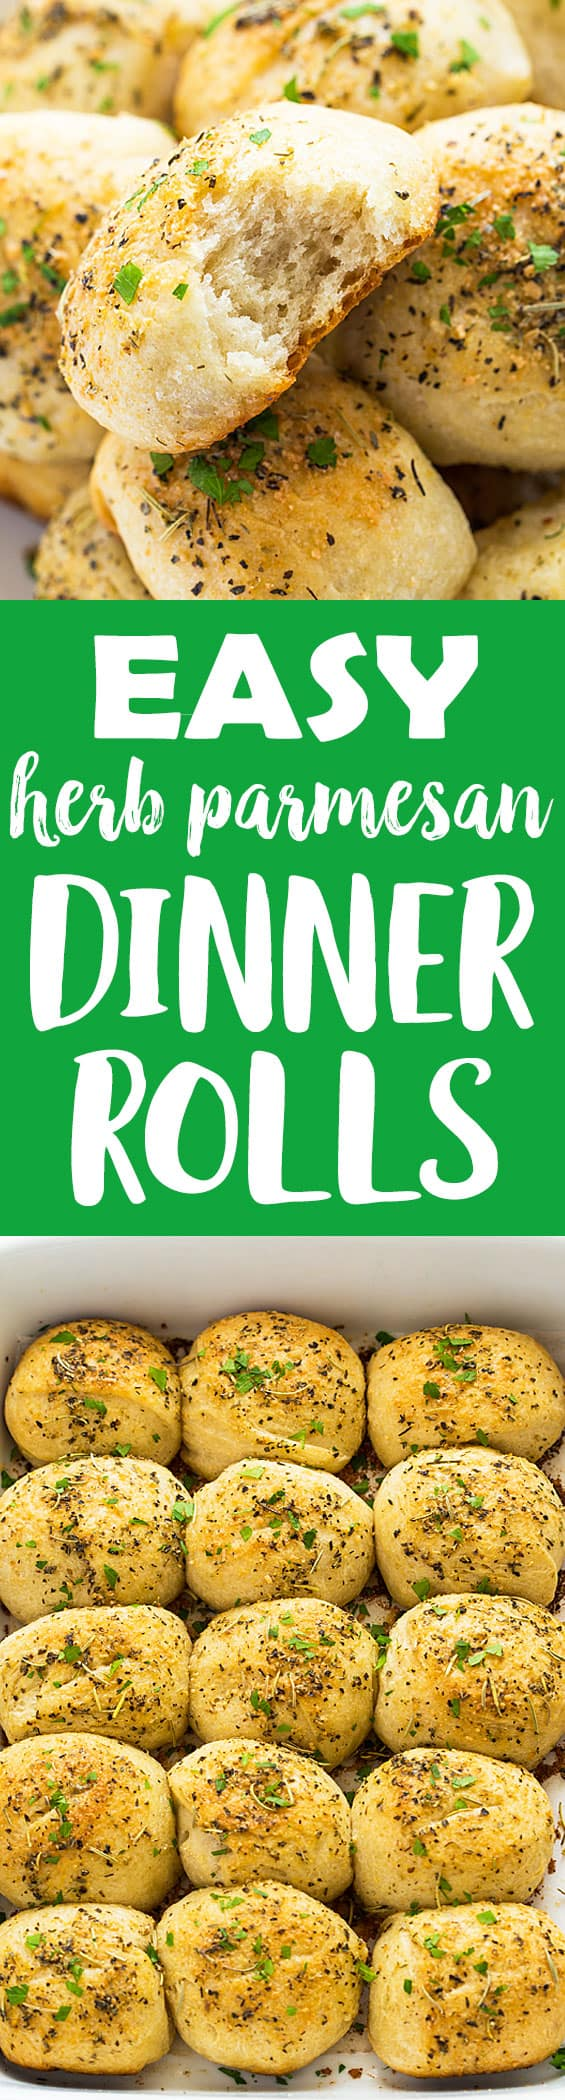 Easy Herb Parmesan Dinner Rolls - Light, fluffy and perfectly seasoned rolls with herbs and Parmesan cheese.